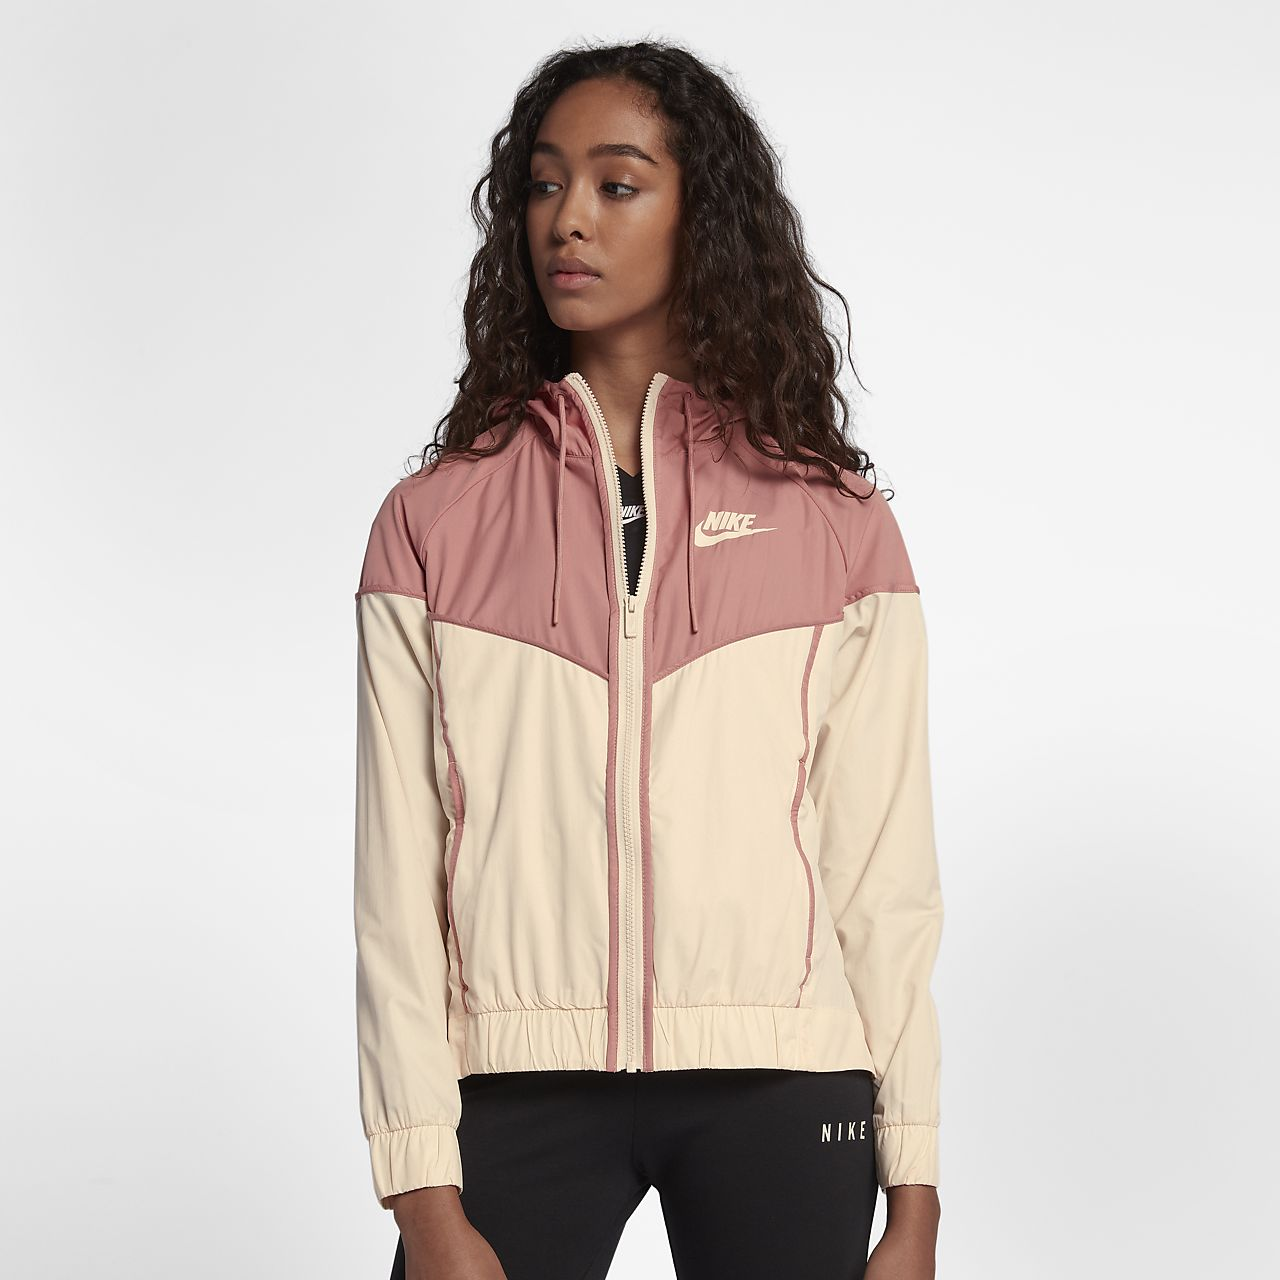 new concept 4e3d8 7db55 Low Resolution Nike Sportswear Windrunner Womens Woven Windbreaker Nike  Sportswear Windrunner Womens Woven Windbreaker